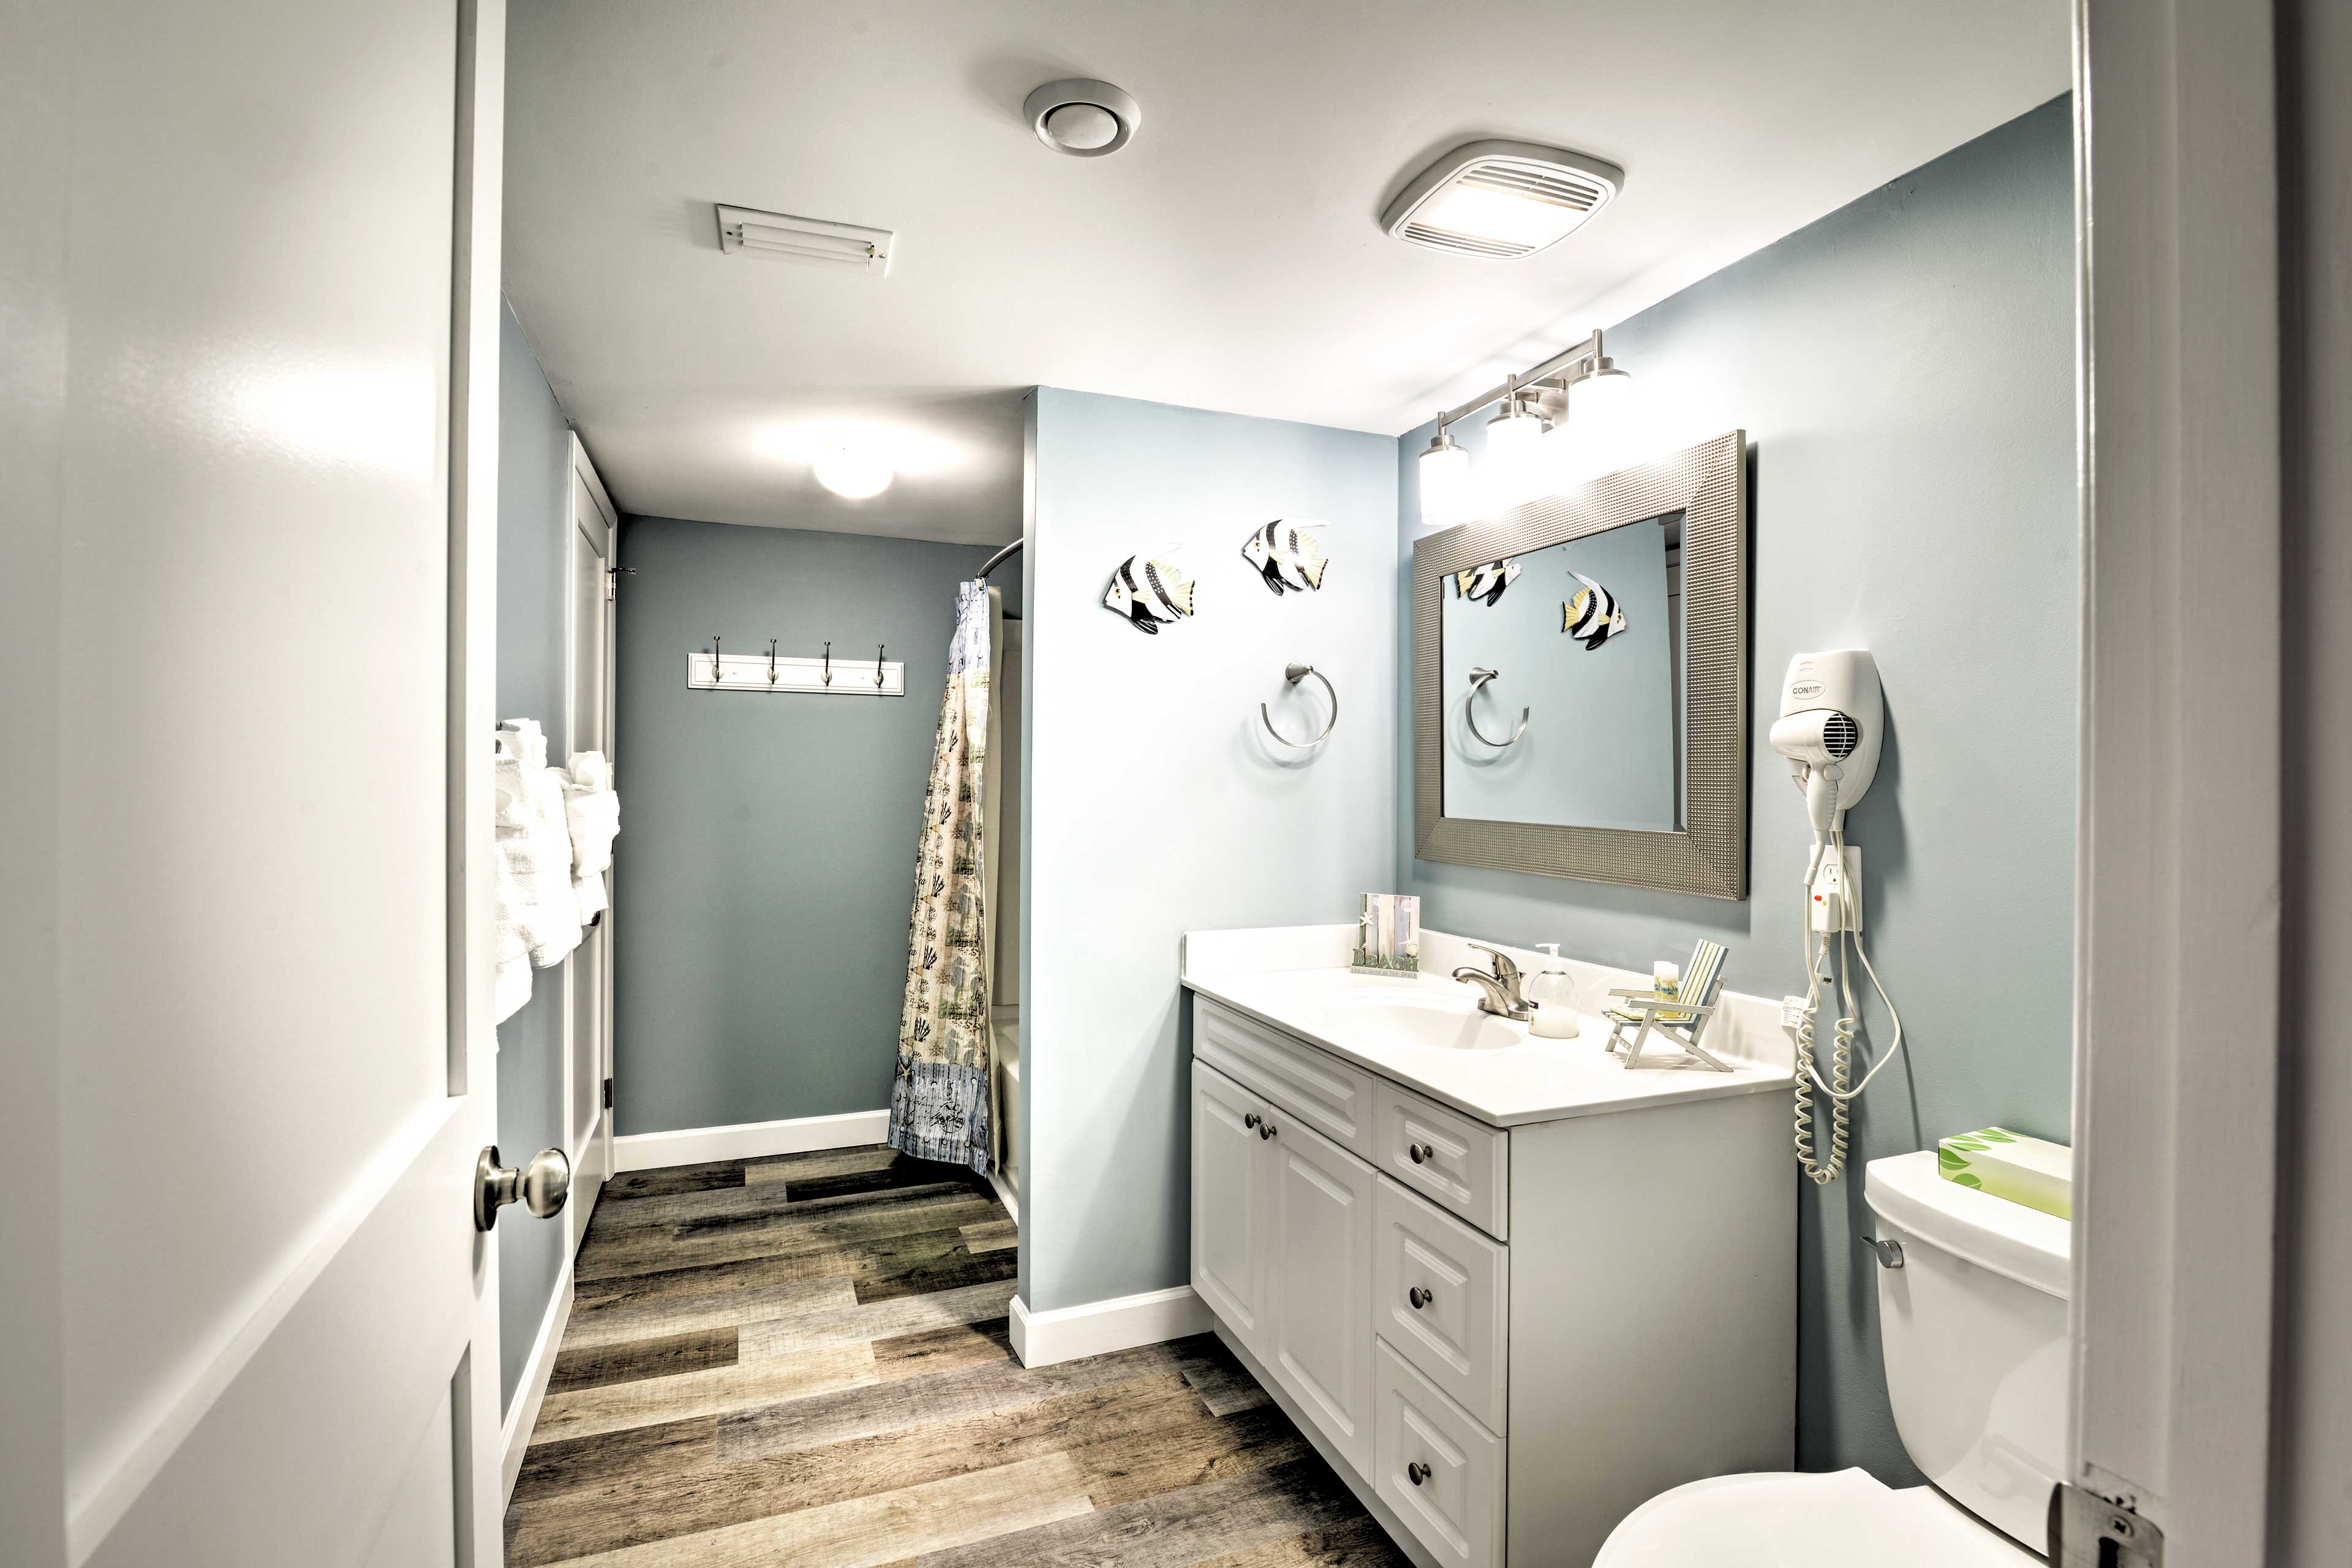 The second full bathroom has a shower/tub combo and a hairdryer.